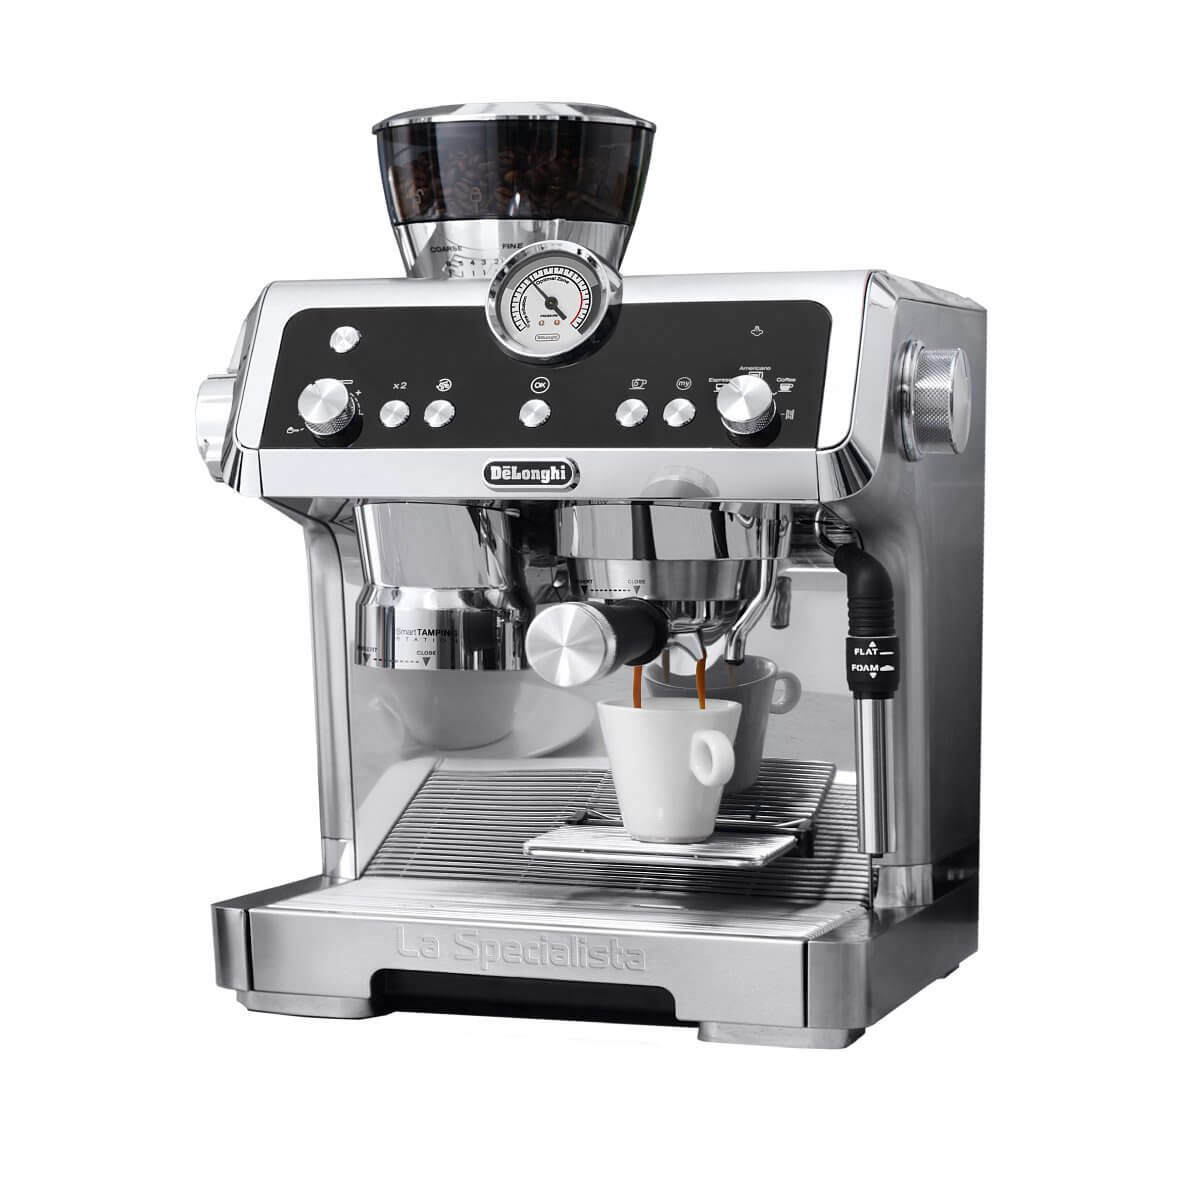 DeLonghi-La-Specialista-Main-New